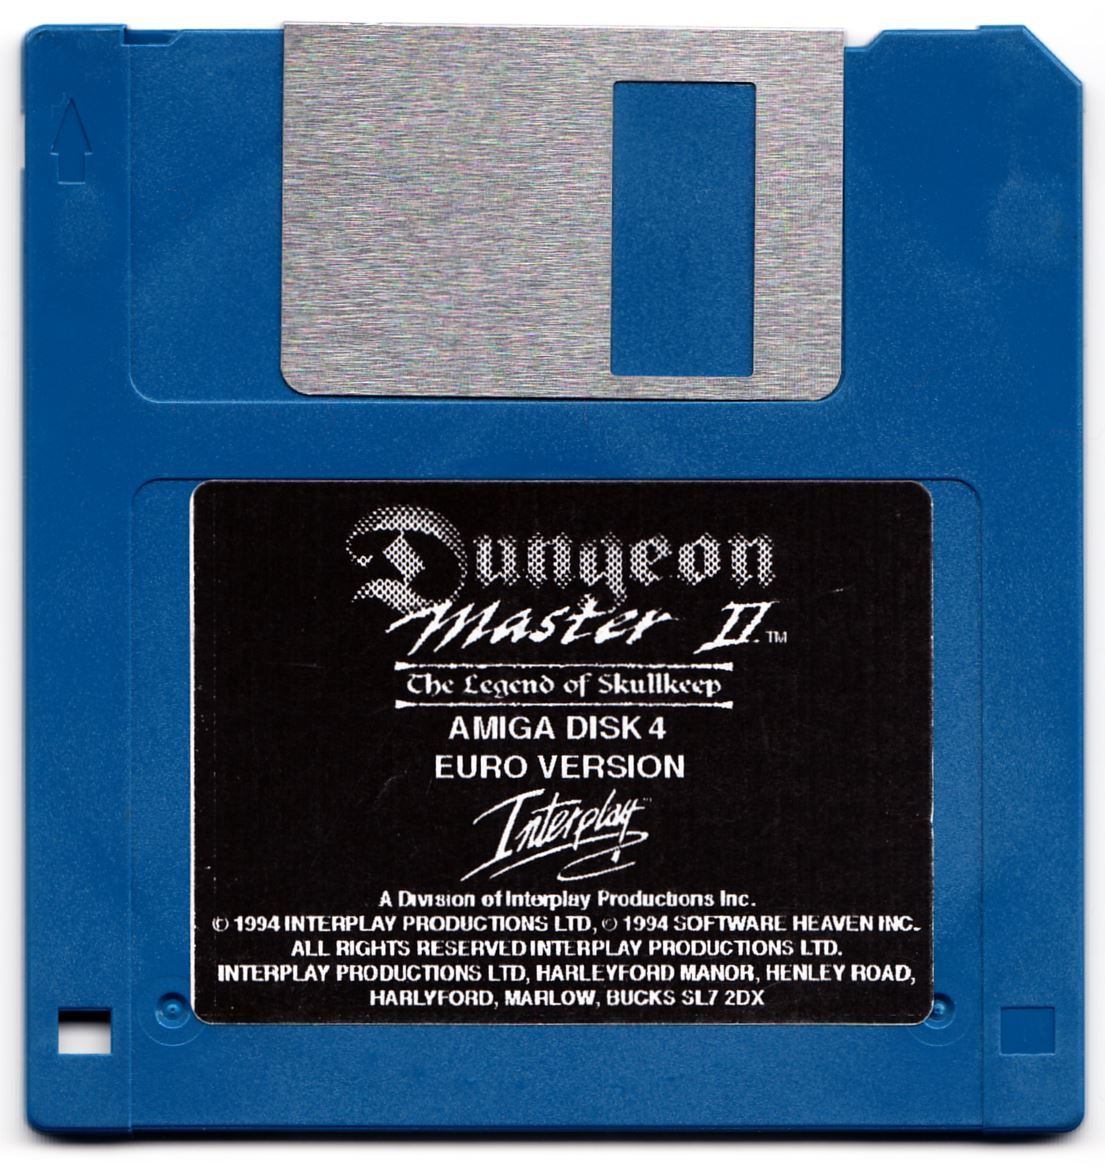 Game - Dungeon Master II - UK - Amiga Alternate - Disk 4 - Front - Scan